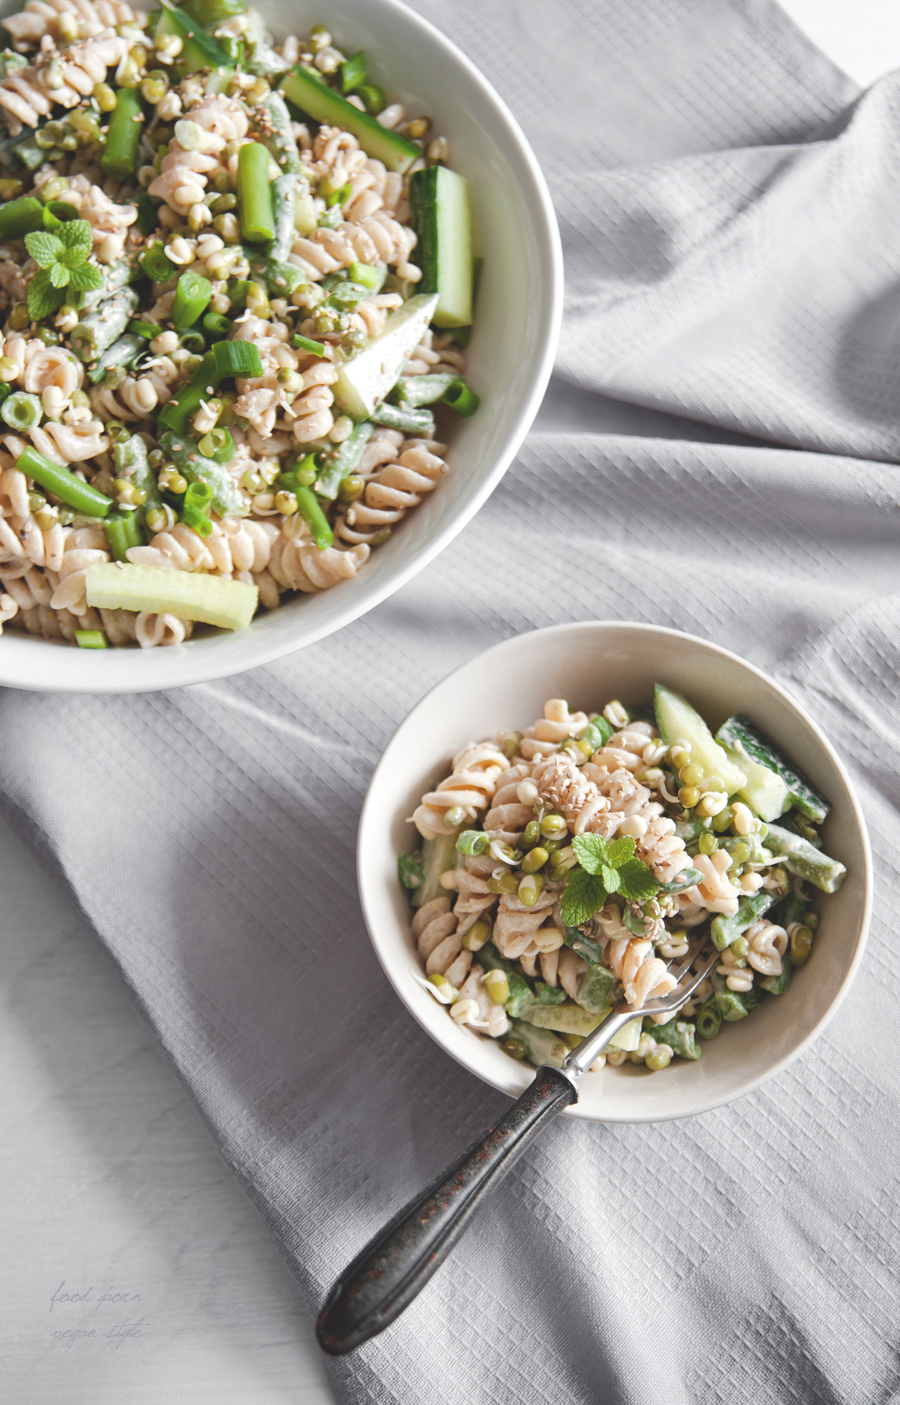 Pasta salad with green beans and tahini dressing